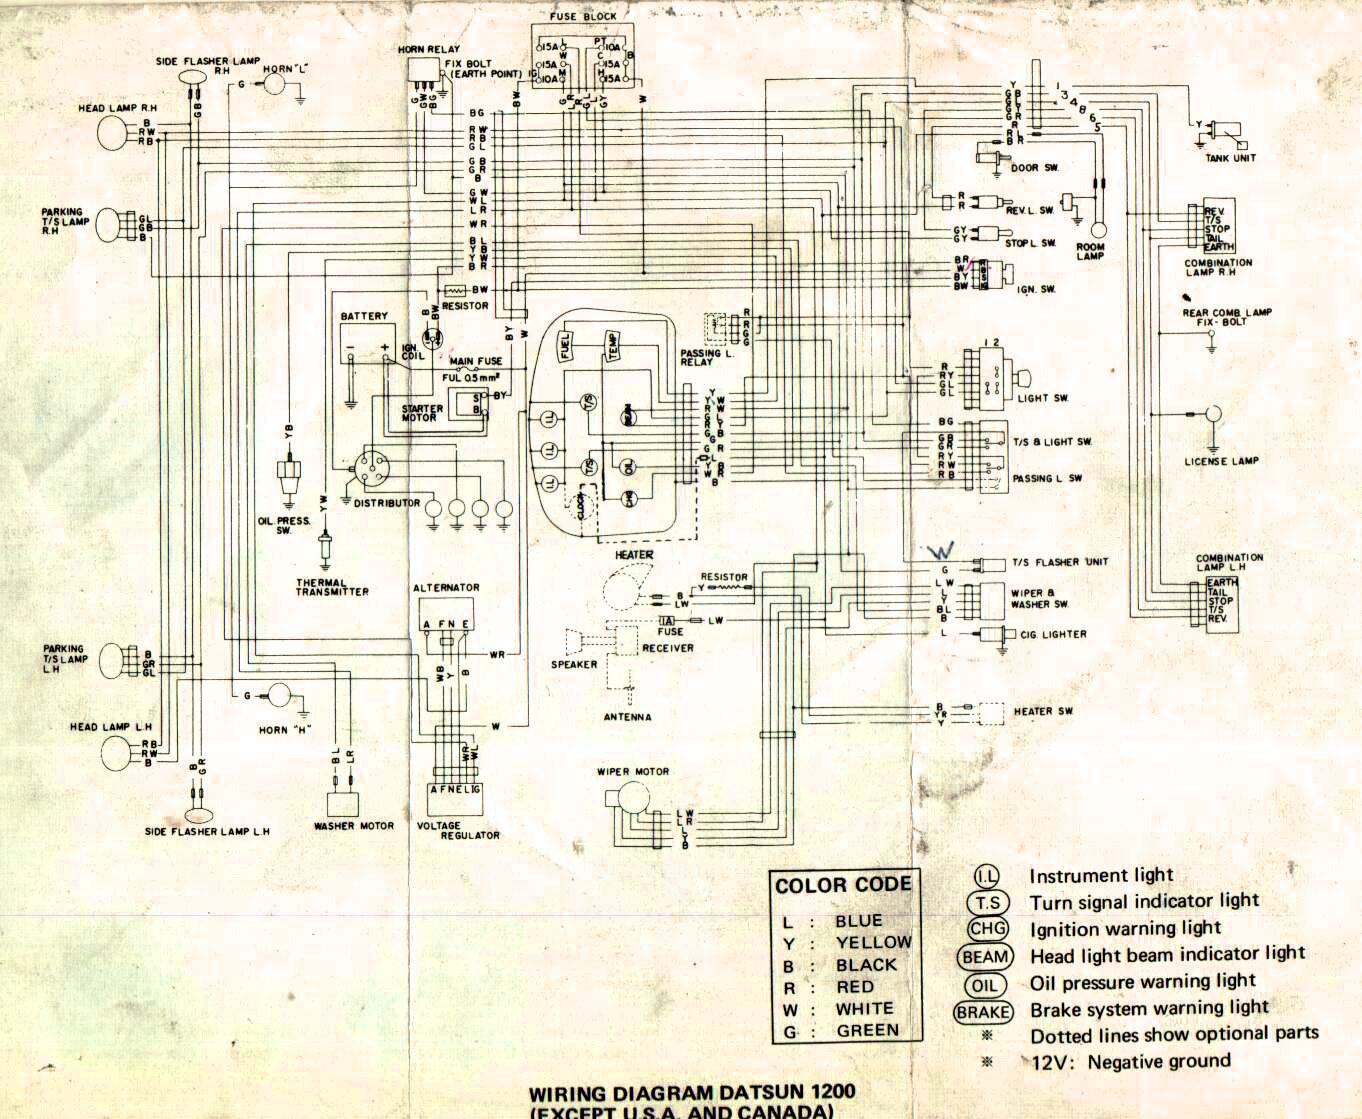 Tech Wiki Wiring Diagram Datsun 1200 Club Schematic Dat110 2